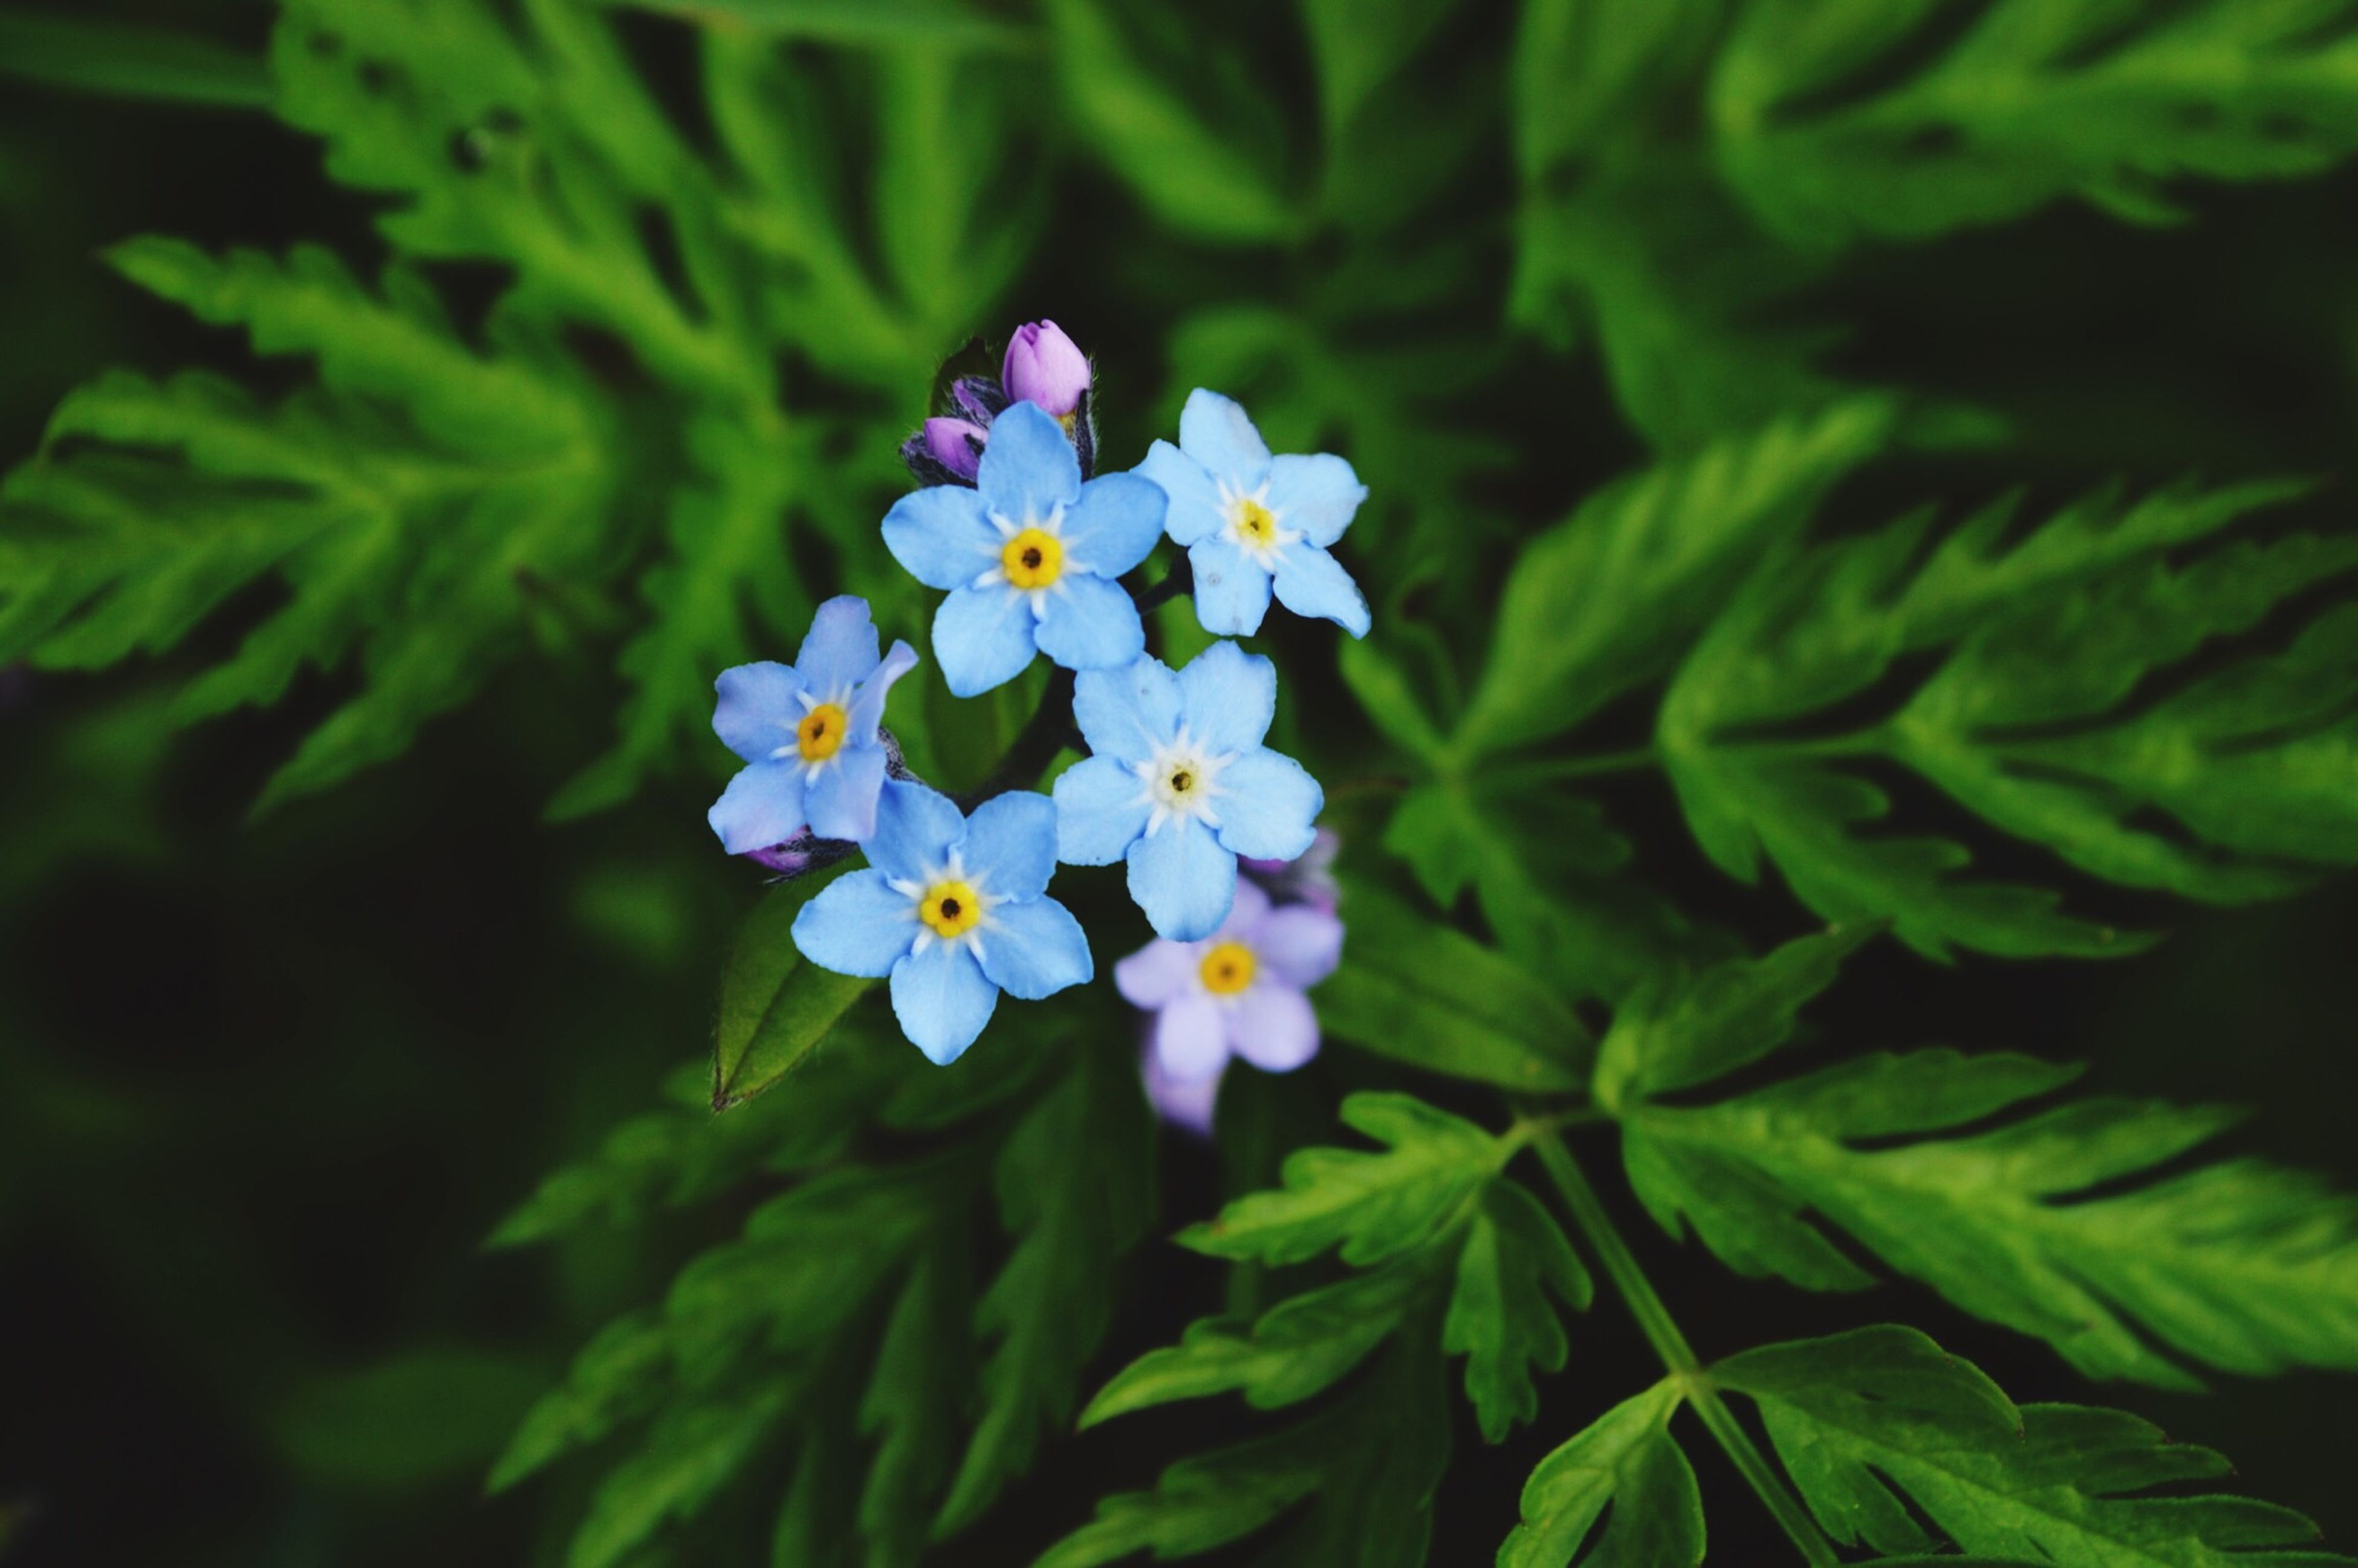 flower, freshness, growth, fragility, petal, beauty in nature, flower head, blooming, leaf, plant, green color, nature, close-up, purple, in bloom, focus on foreground, white color, high angle view, park - man made space, blossom